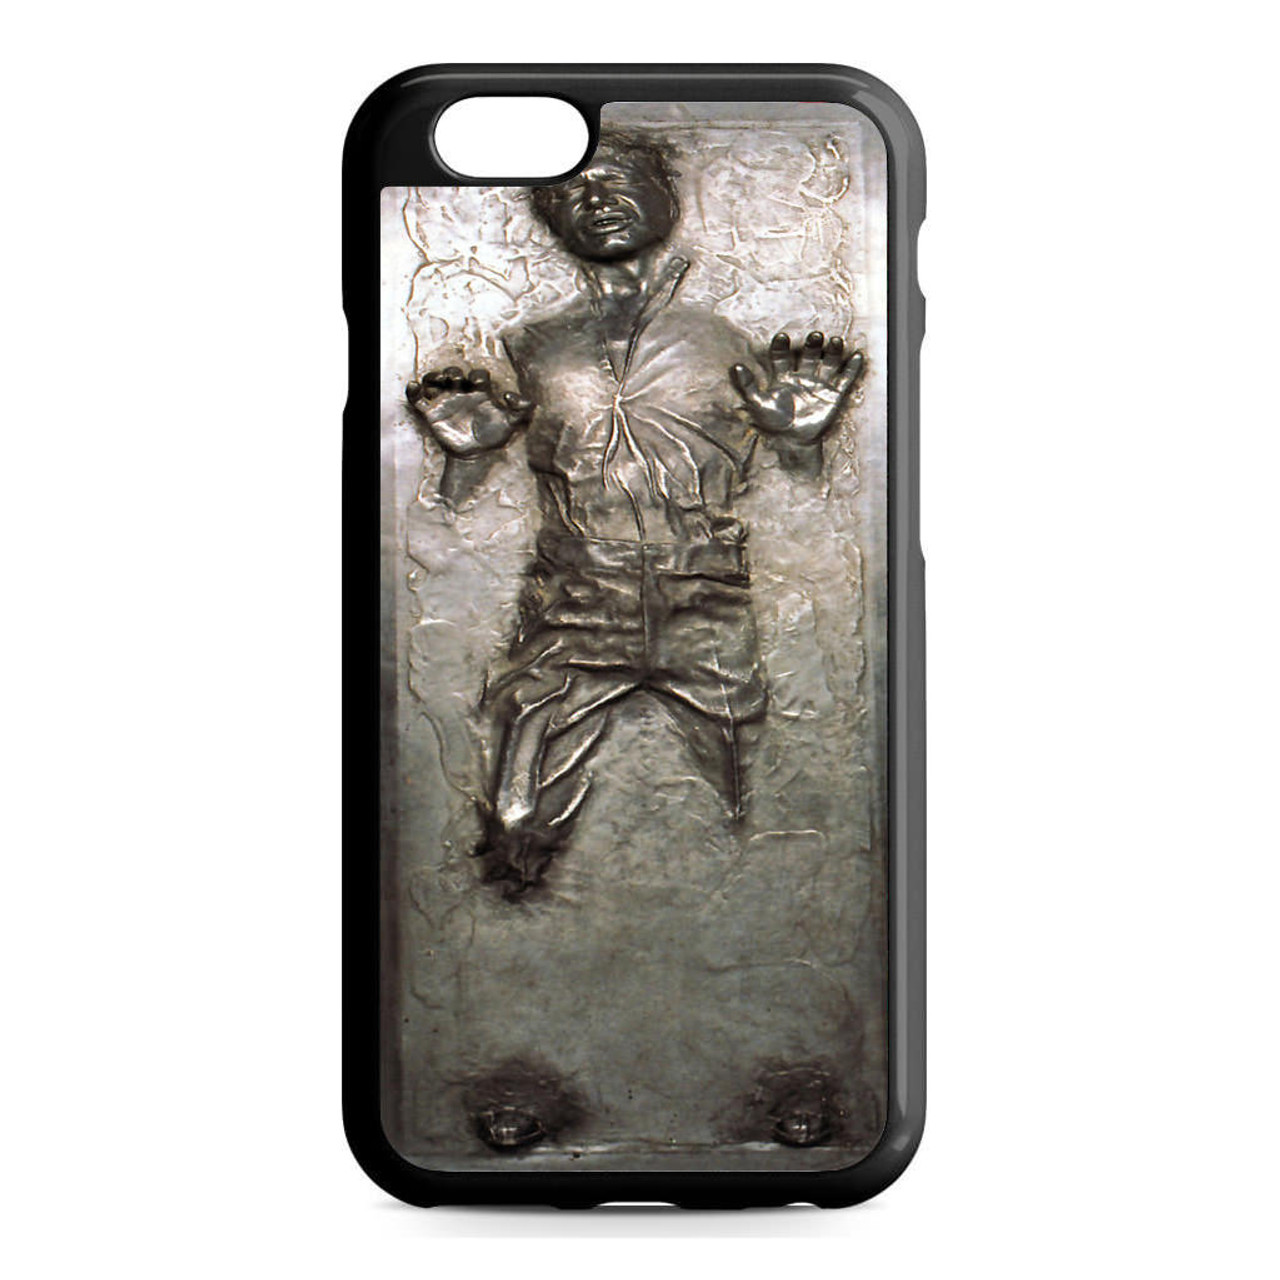 competitive price cfd53 a1418 Han Solo in Carbonite iPhone 6/6S Case